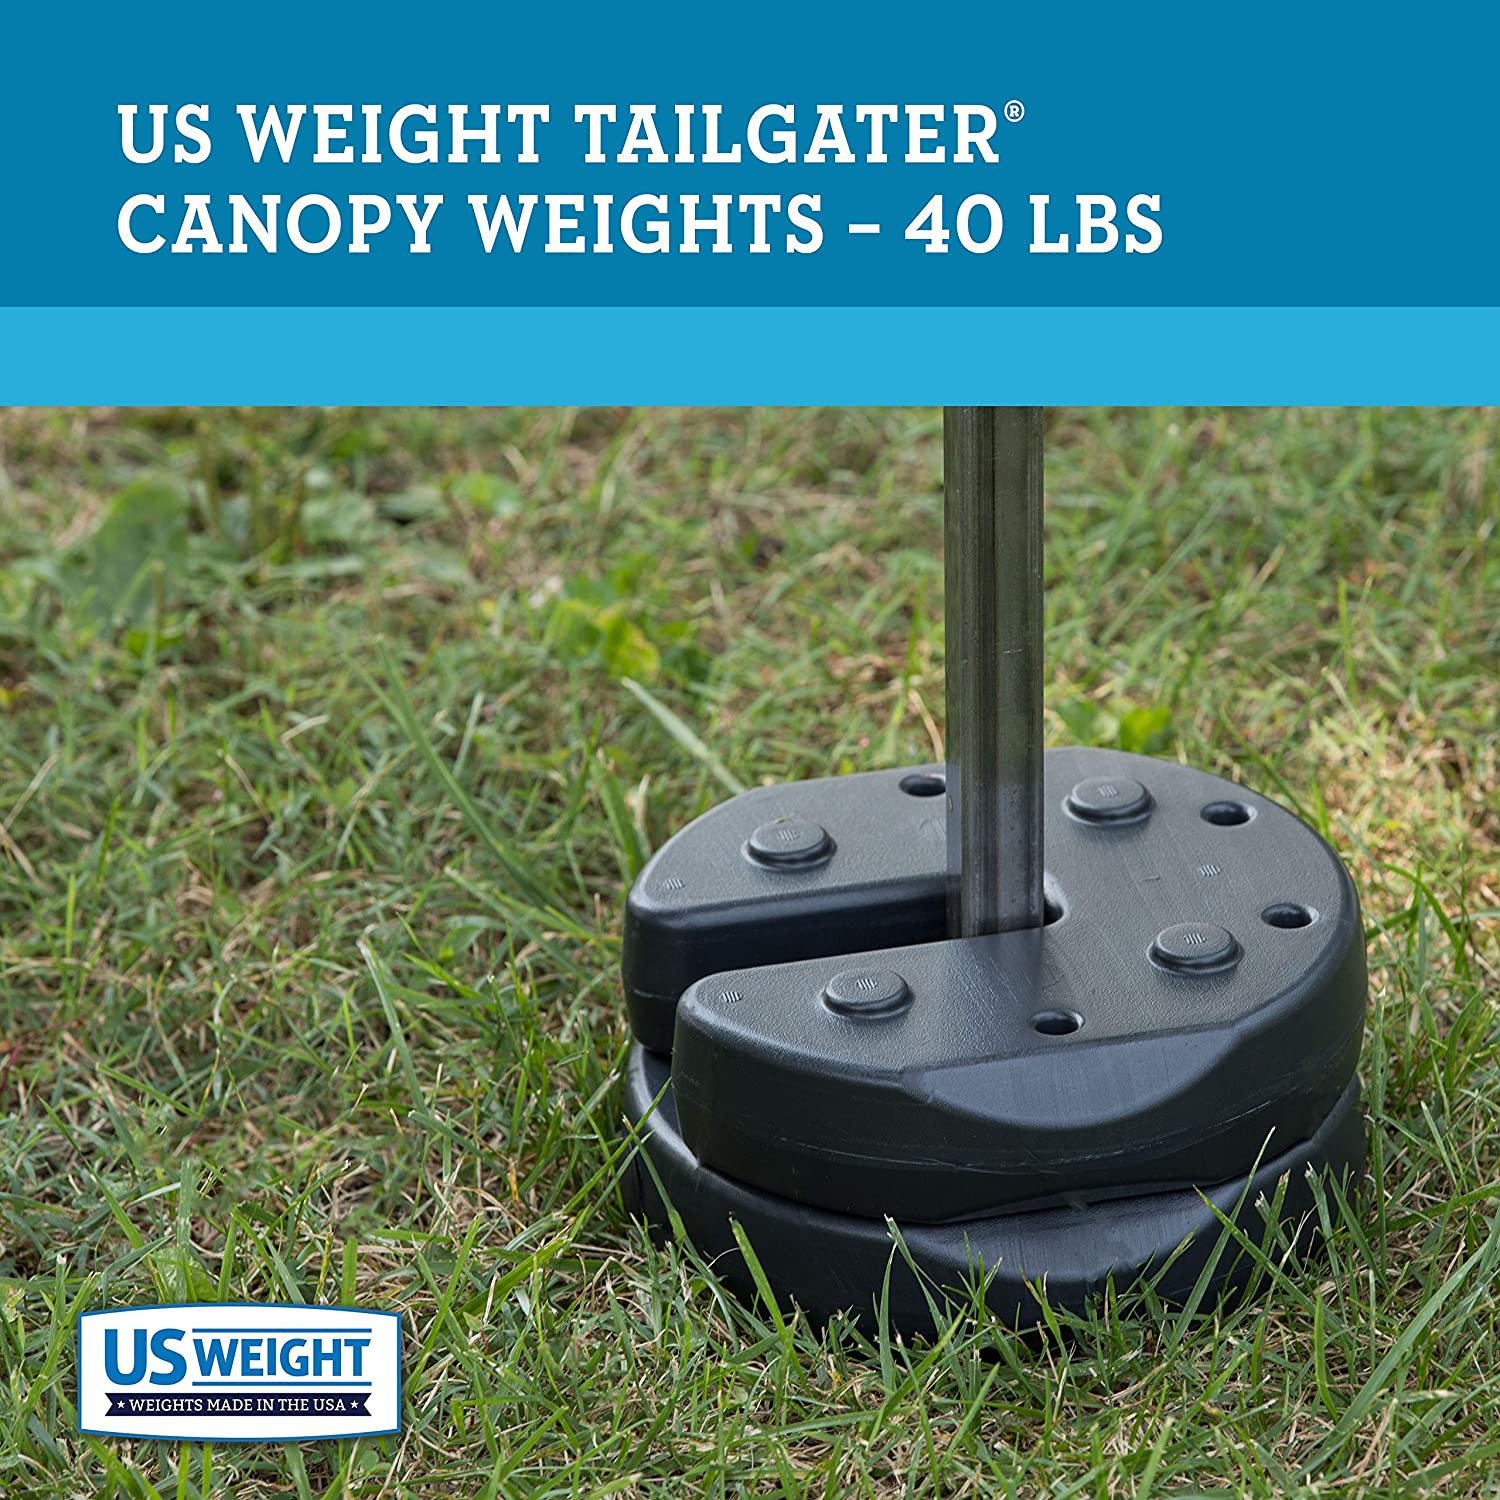 US Weight Tailgater Canopy Weights with No-Pinch Design ...